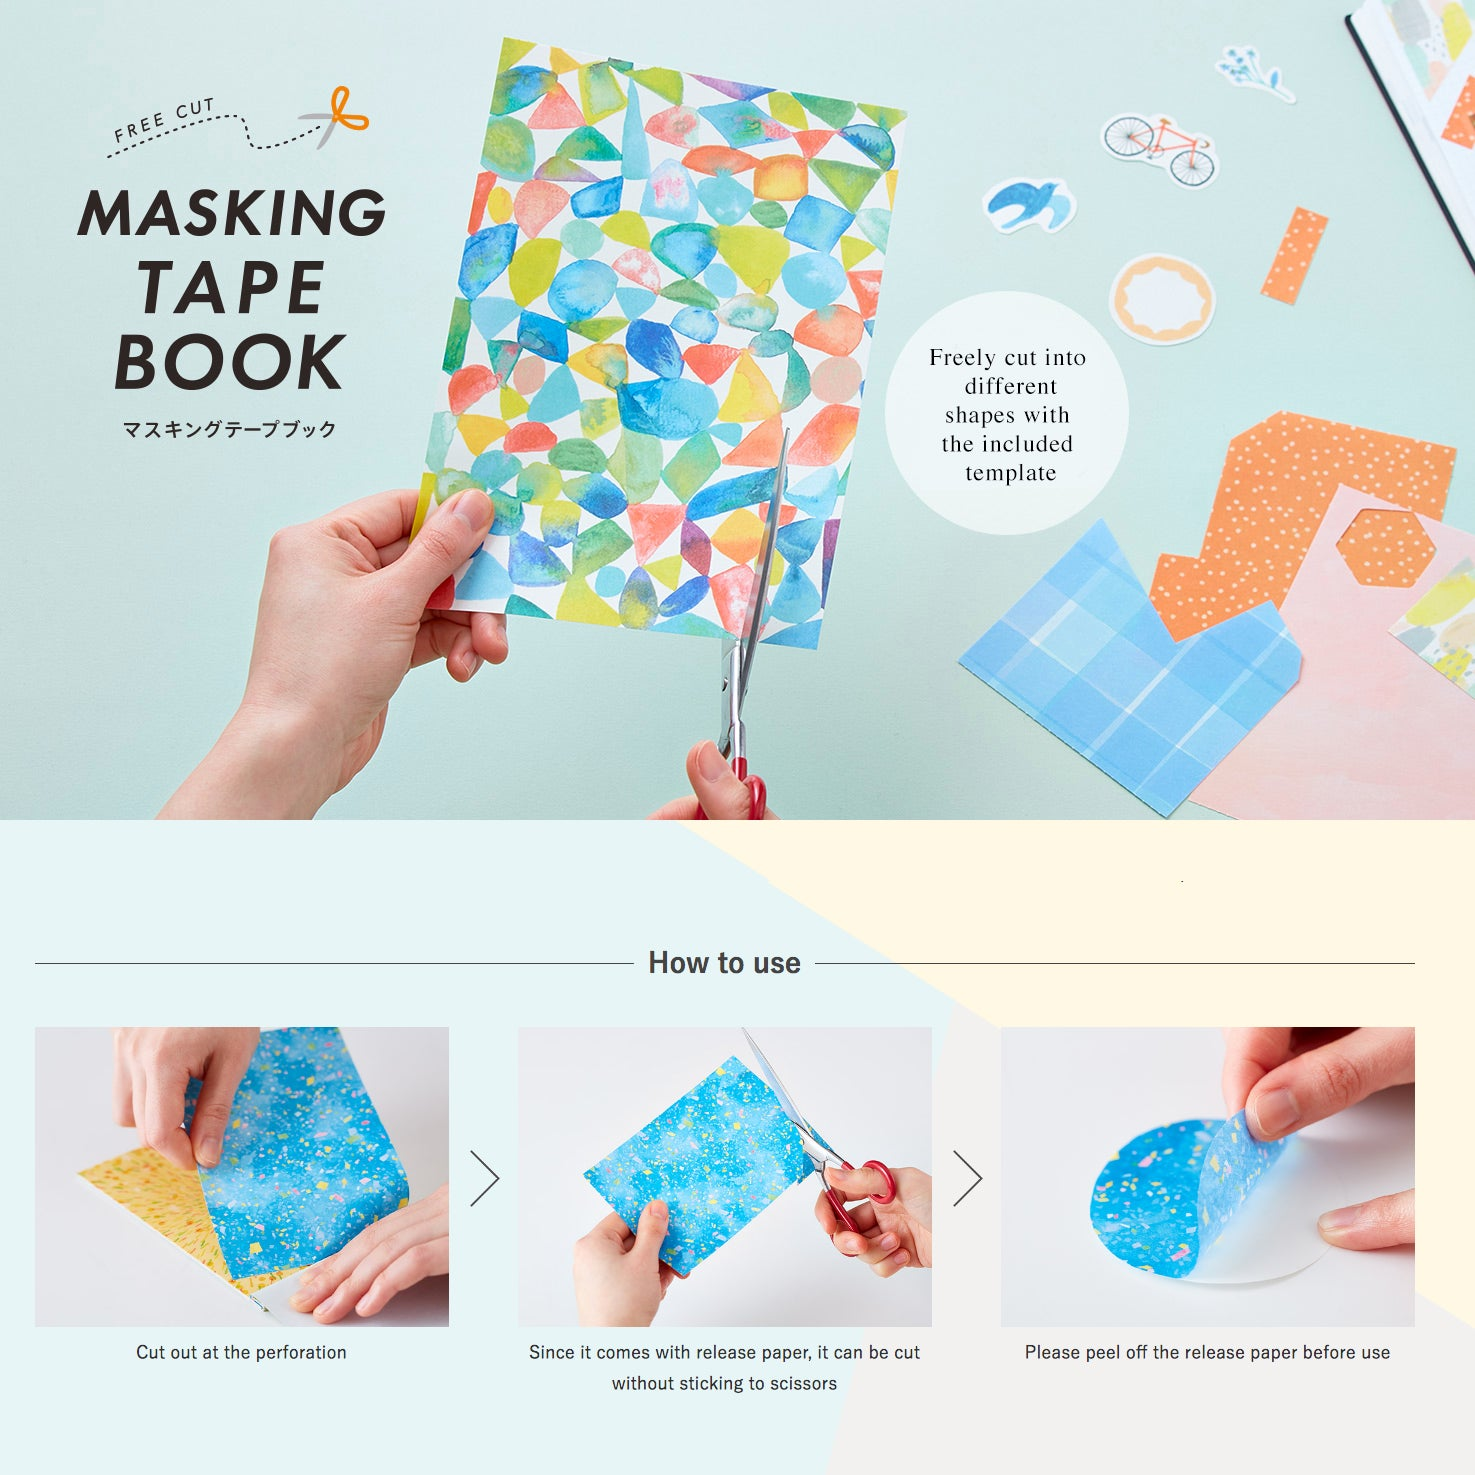 How to use Masking Tape Book